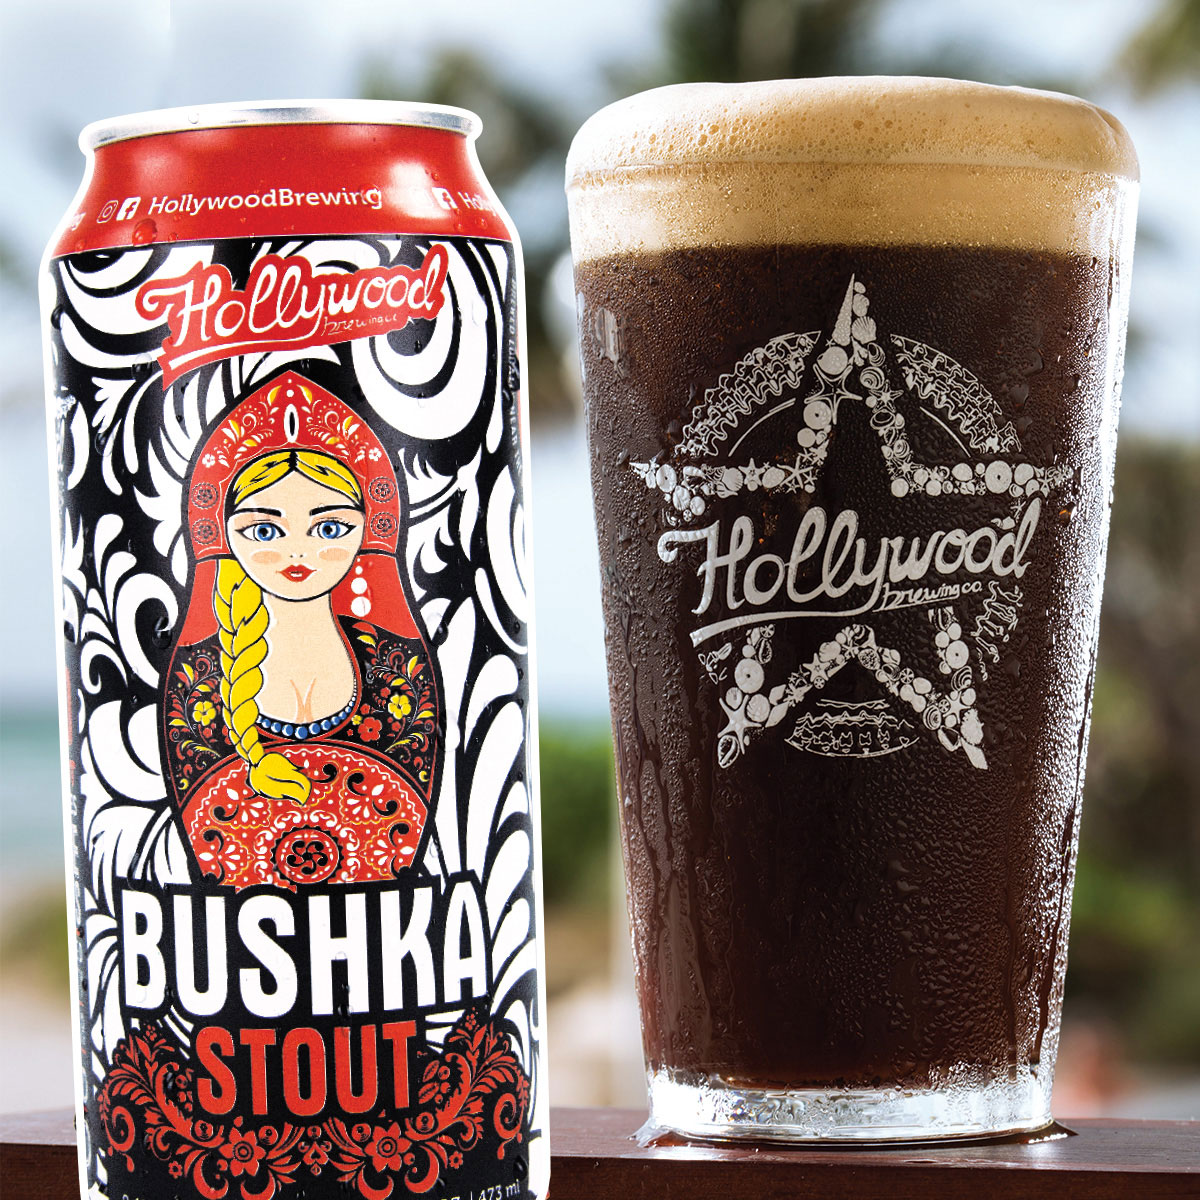 BushkaStout Hollywood Brewing